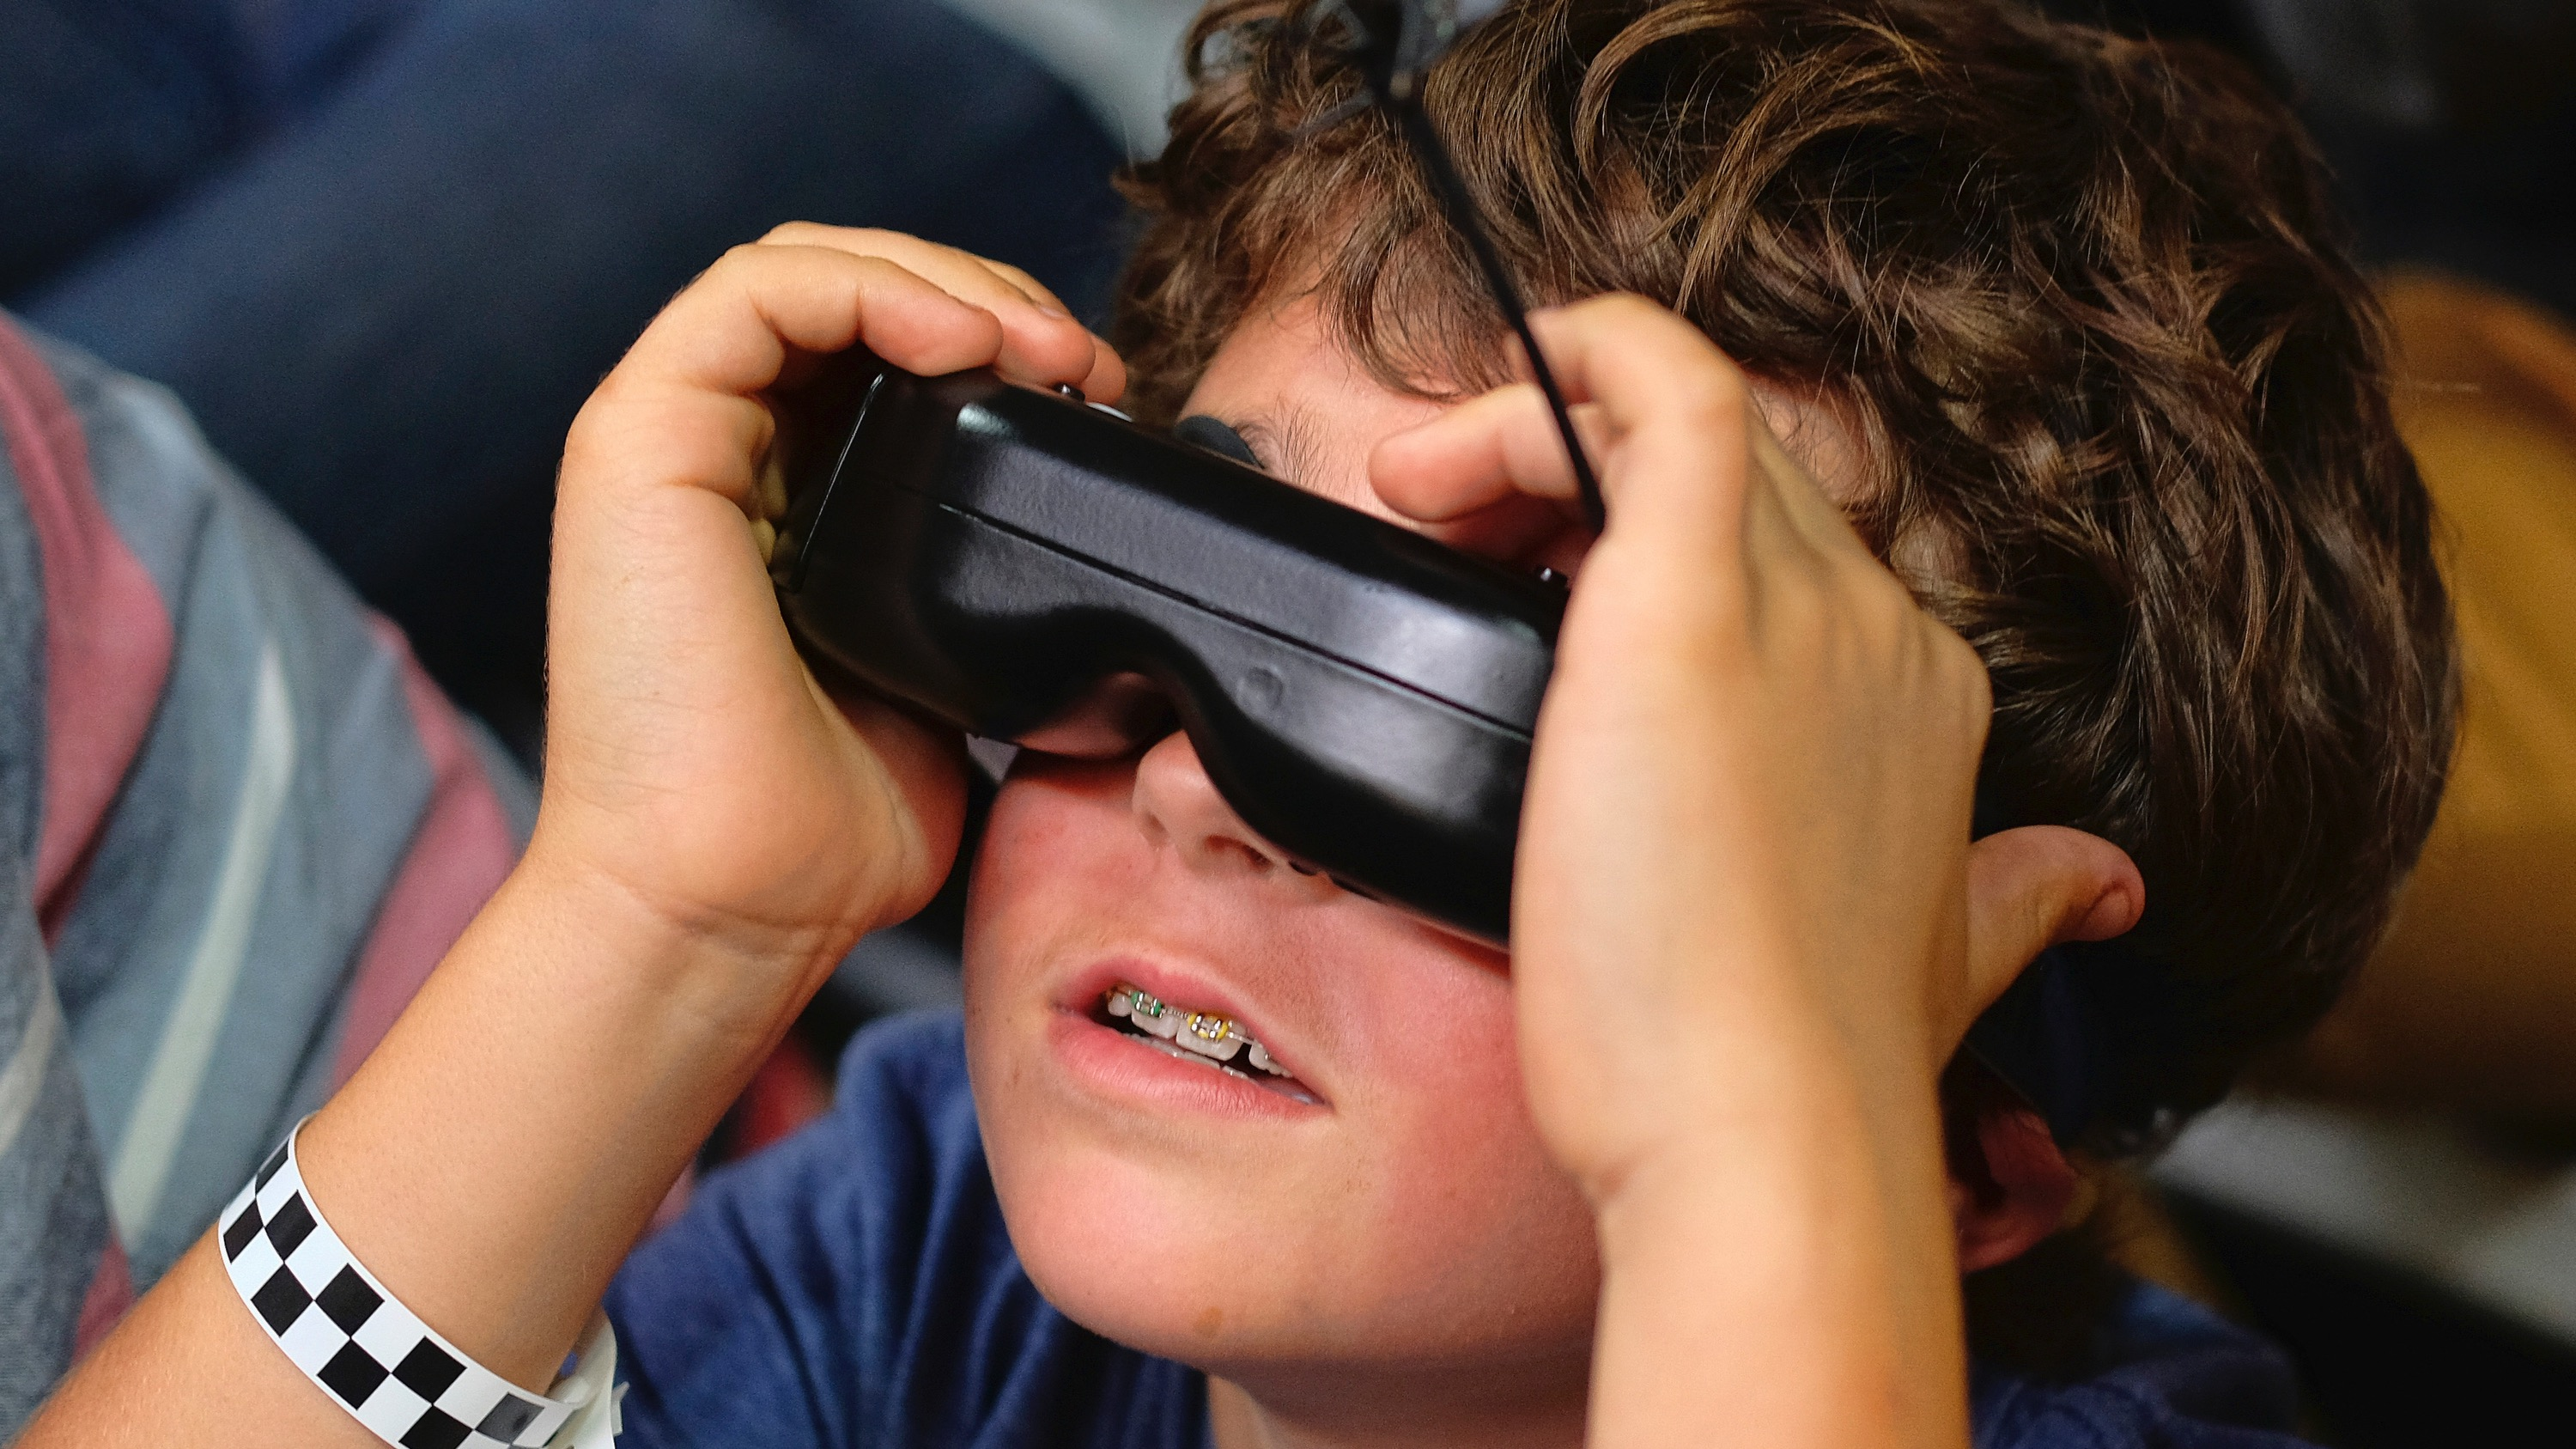 """HOLD FOR SWAYNE HALL IN BIZ-This March 19, 2016 photo shows Dashel Petranek,9, with strapped on First Person View goggles watches a drone racing during a race of the Drone Racing League in a vacant Hawthorne Plaza mall in Hawthorne, Calif. The DRL engineers its drones to be """"the size of dinner plates going 80 miles per hour,"""" said Horbaczewski. It hopes to be the Formula 1 of unmanned aerial vehicle racing. (AP Photo/Richard Vogel)"""